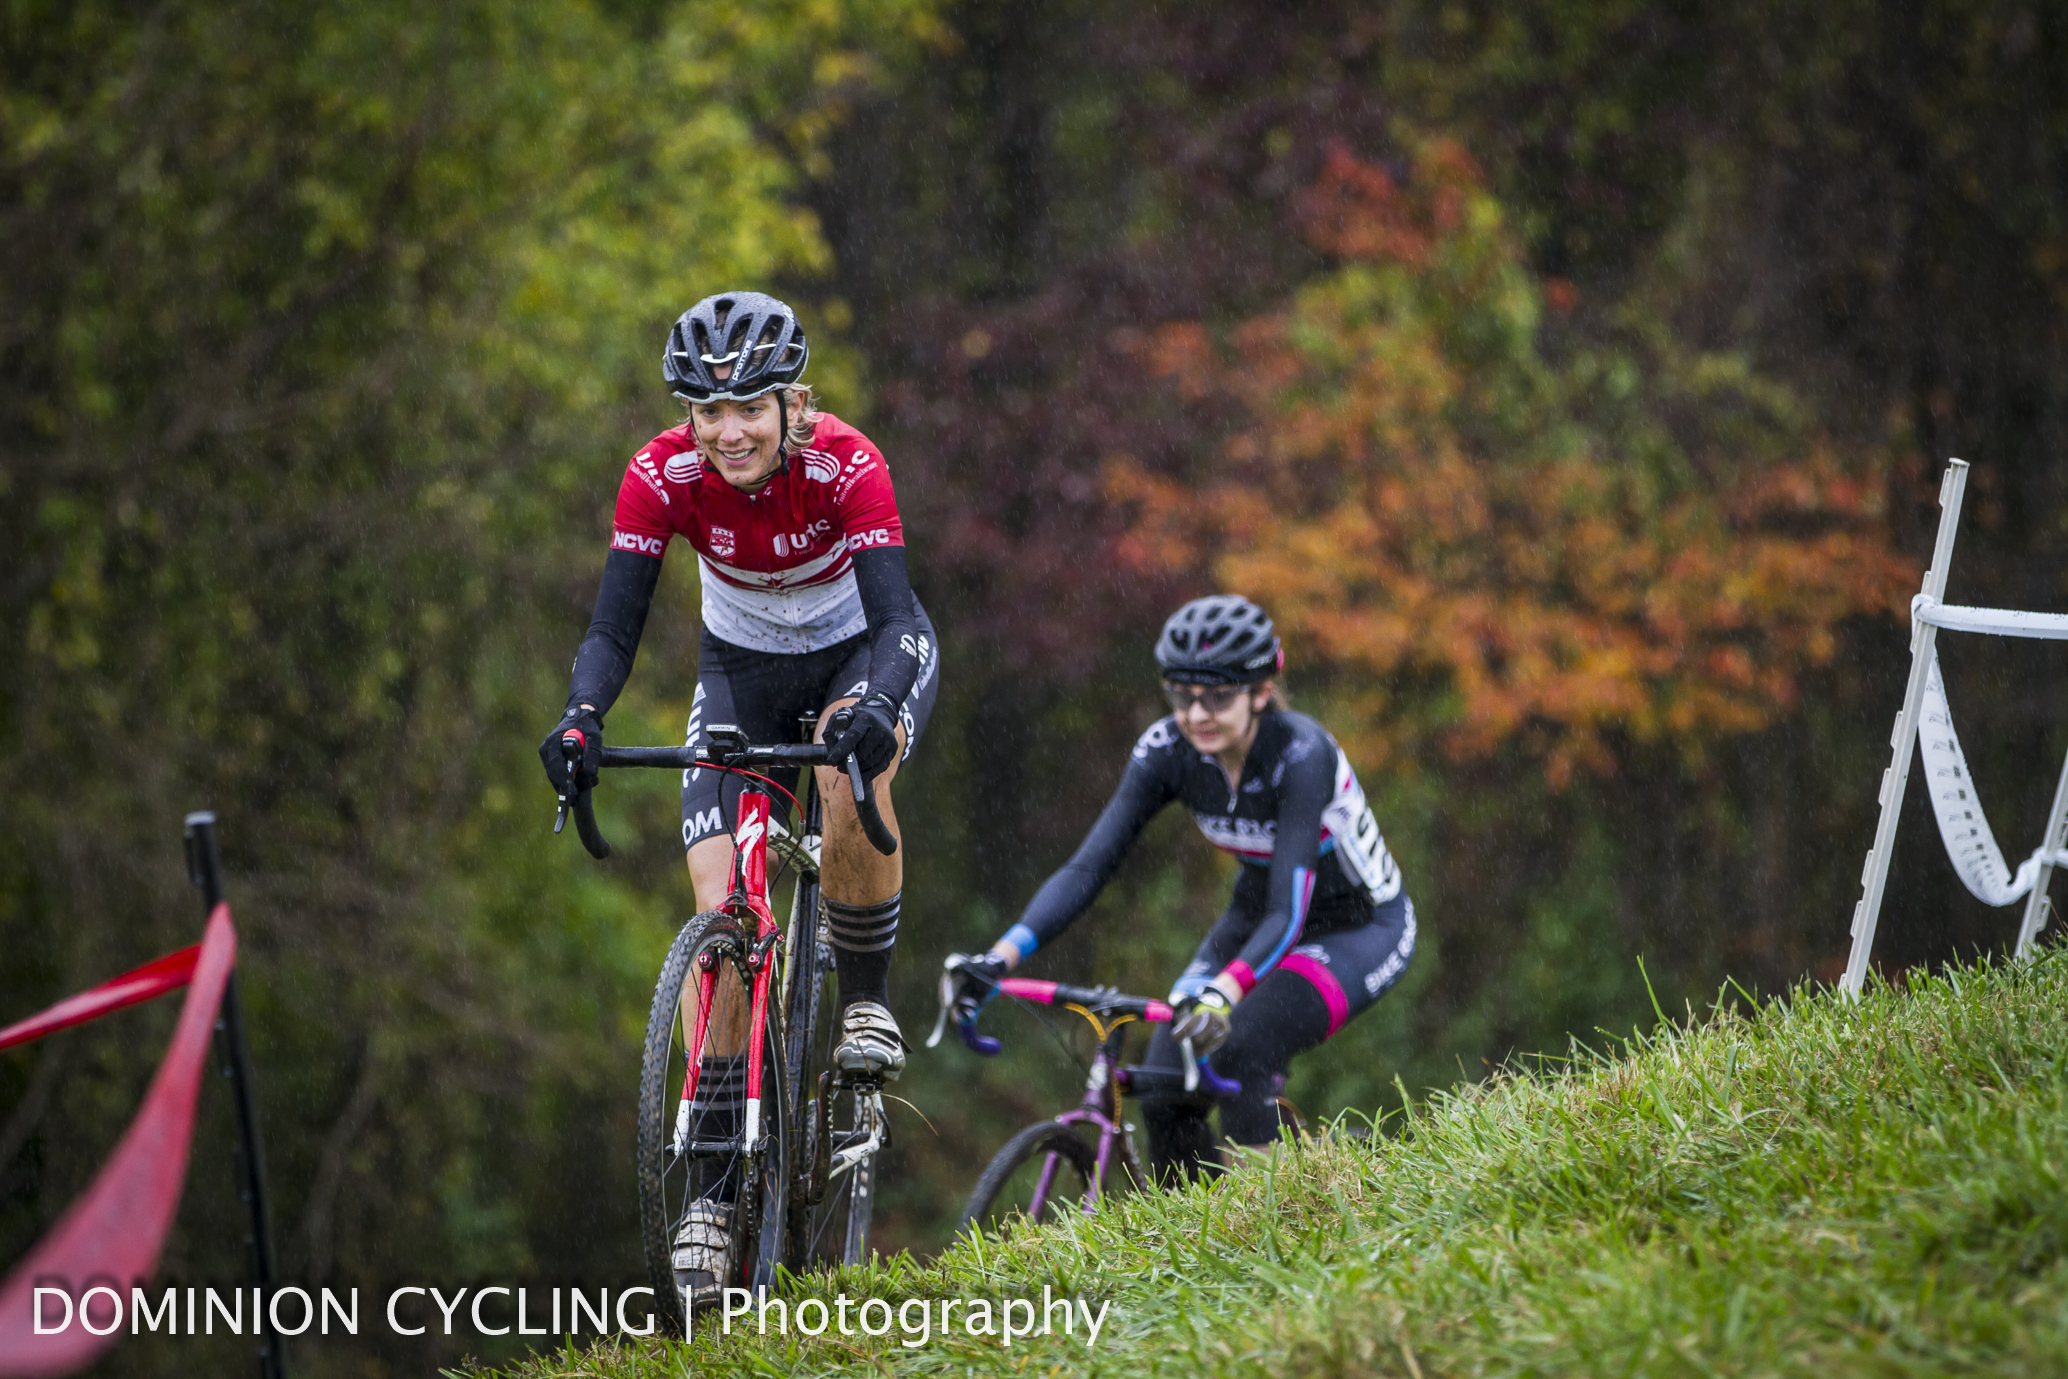 Tacchino Cyclocross - Presented by Squadra CoppiSeptember 29, 2019